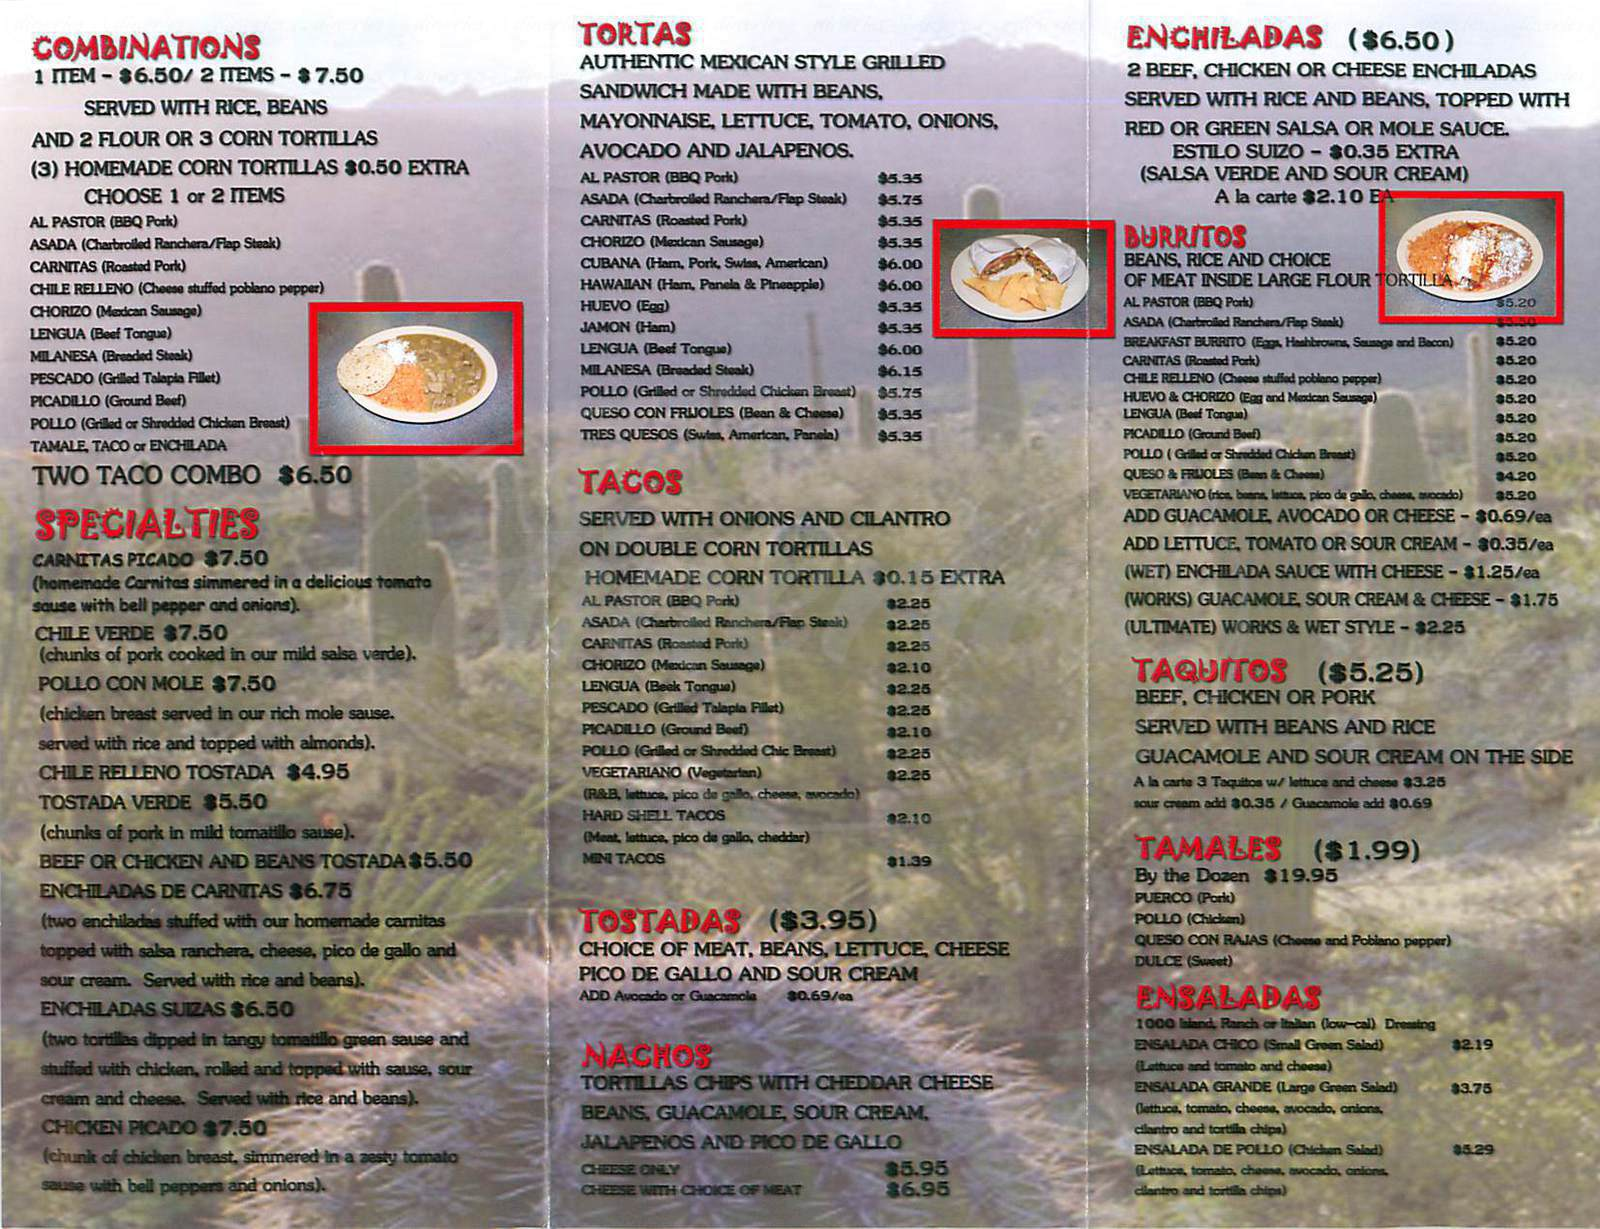 menu for Tortas Mexican Grill